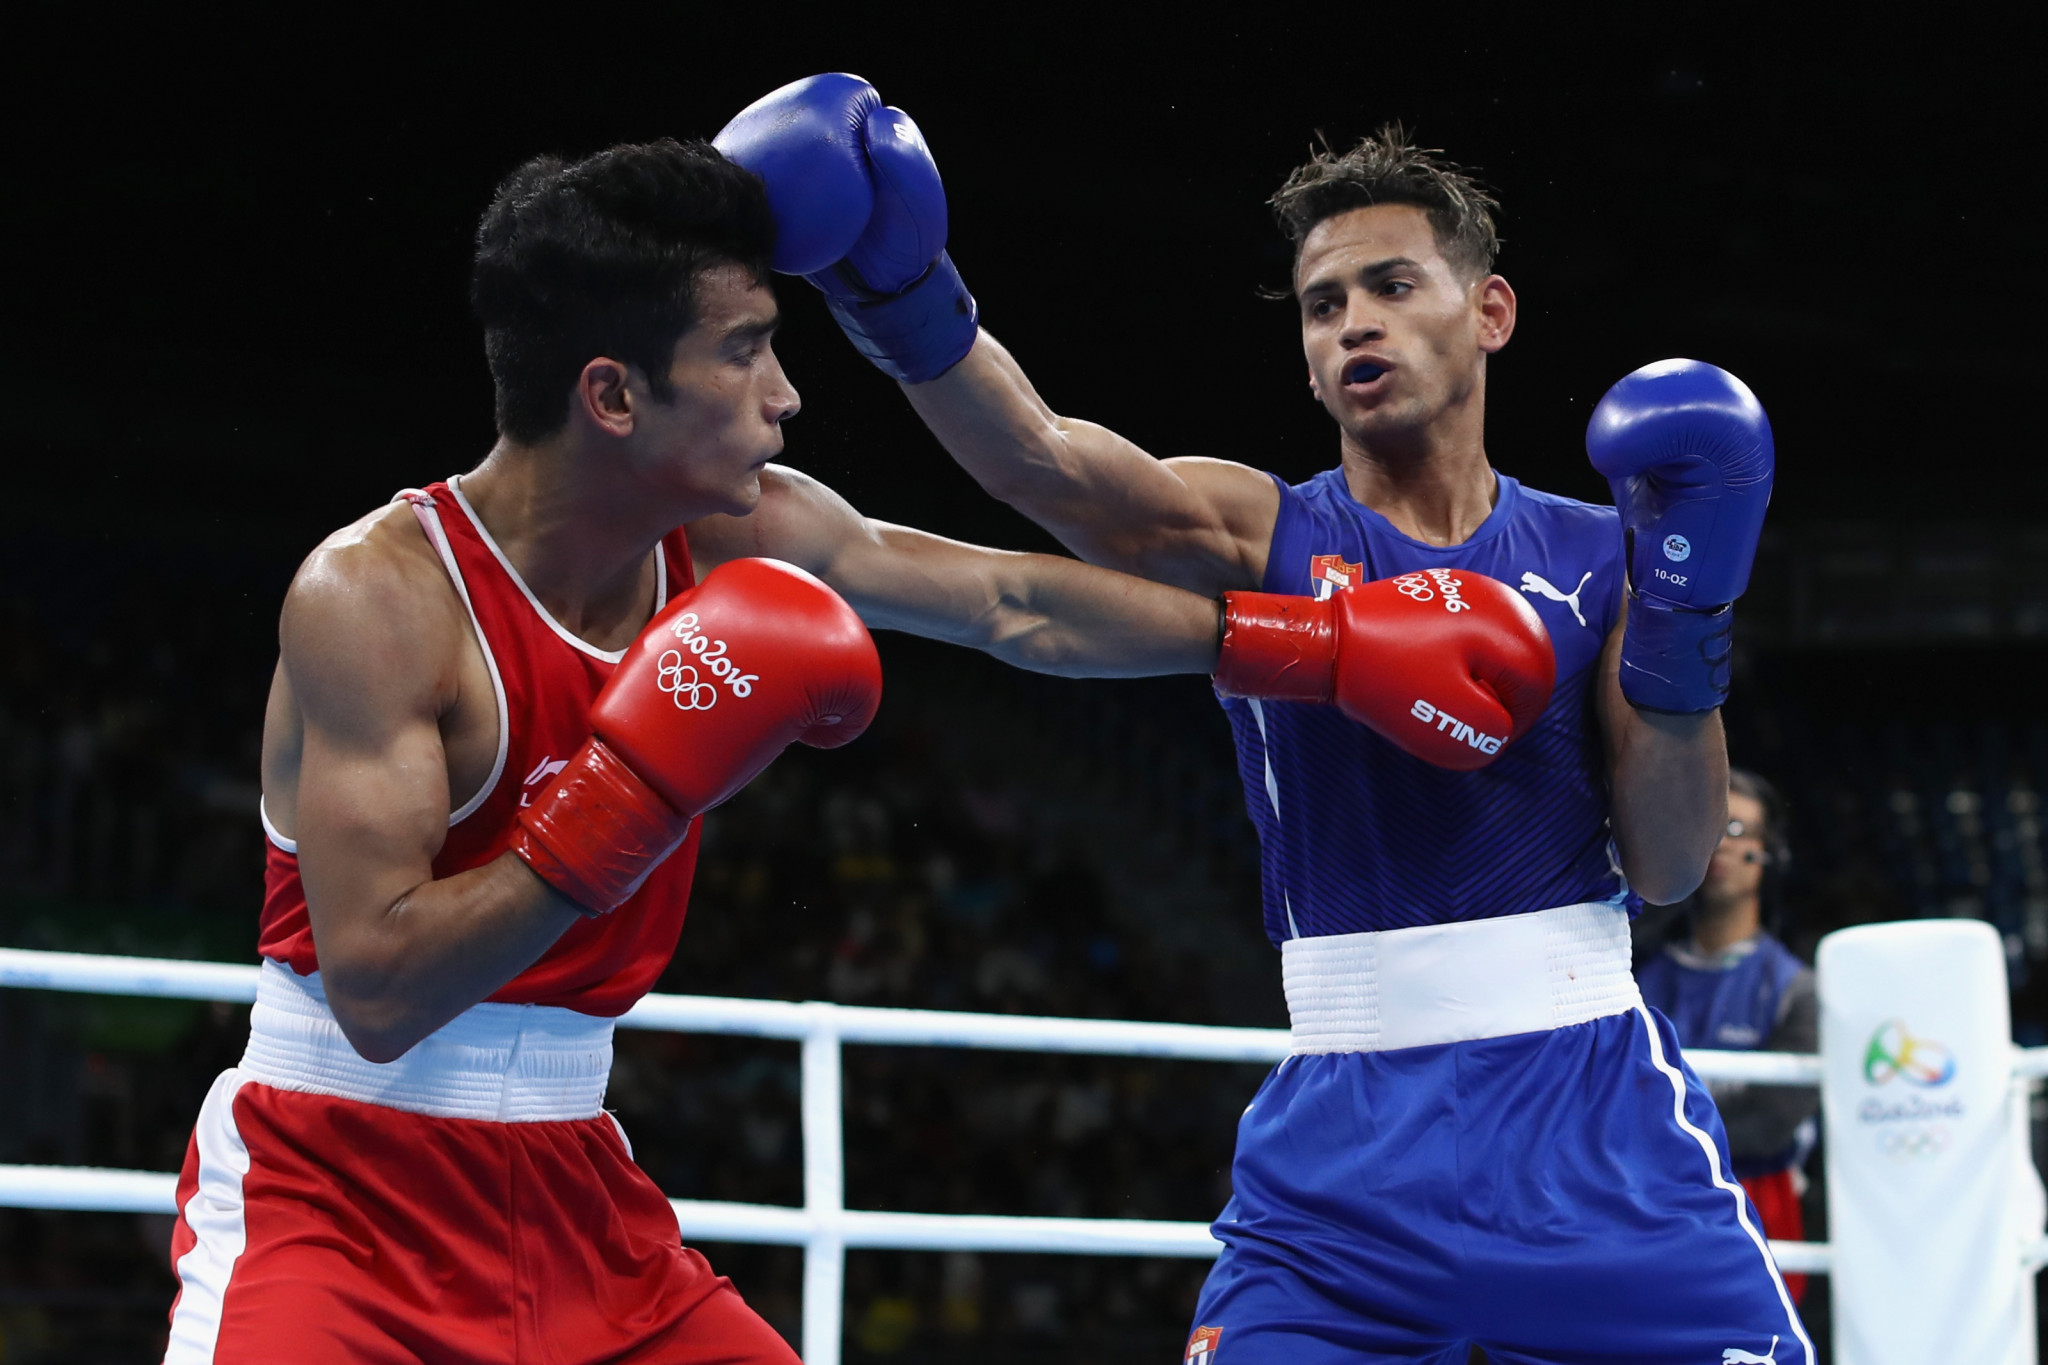 World Championships bronze medallist Shiva Thapa of India progressed to the last 16 of the men's lightweight division ©Getty Images